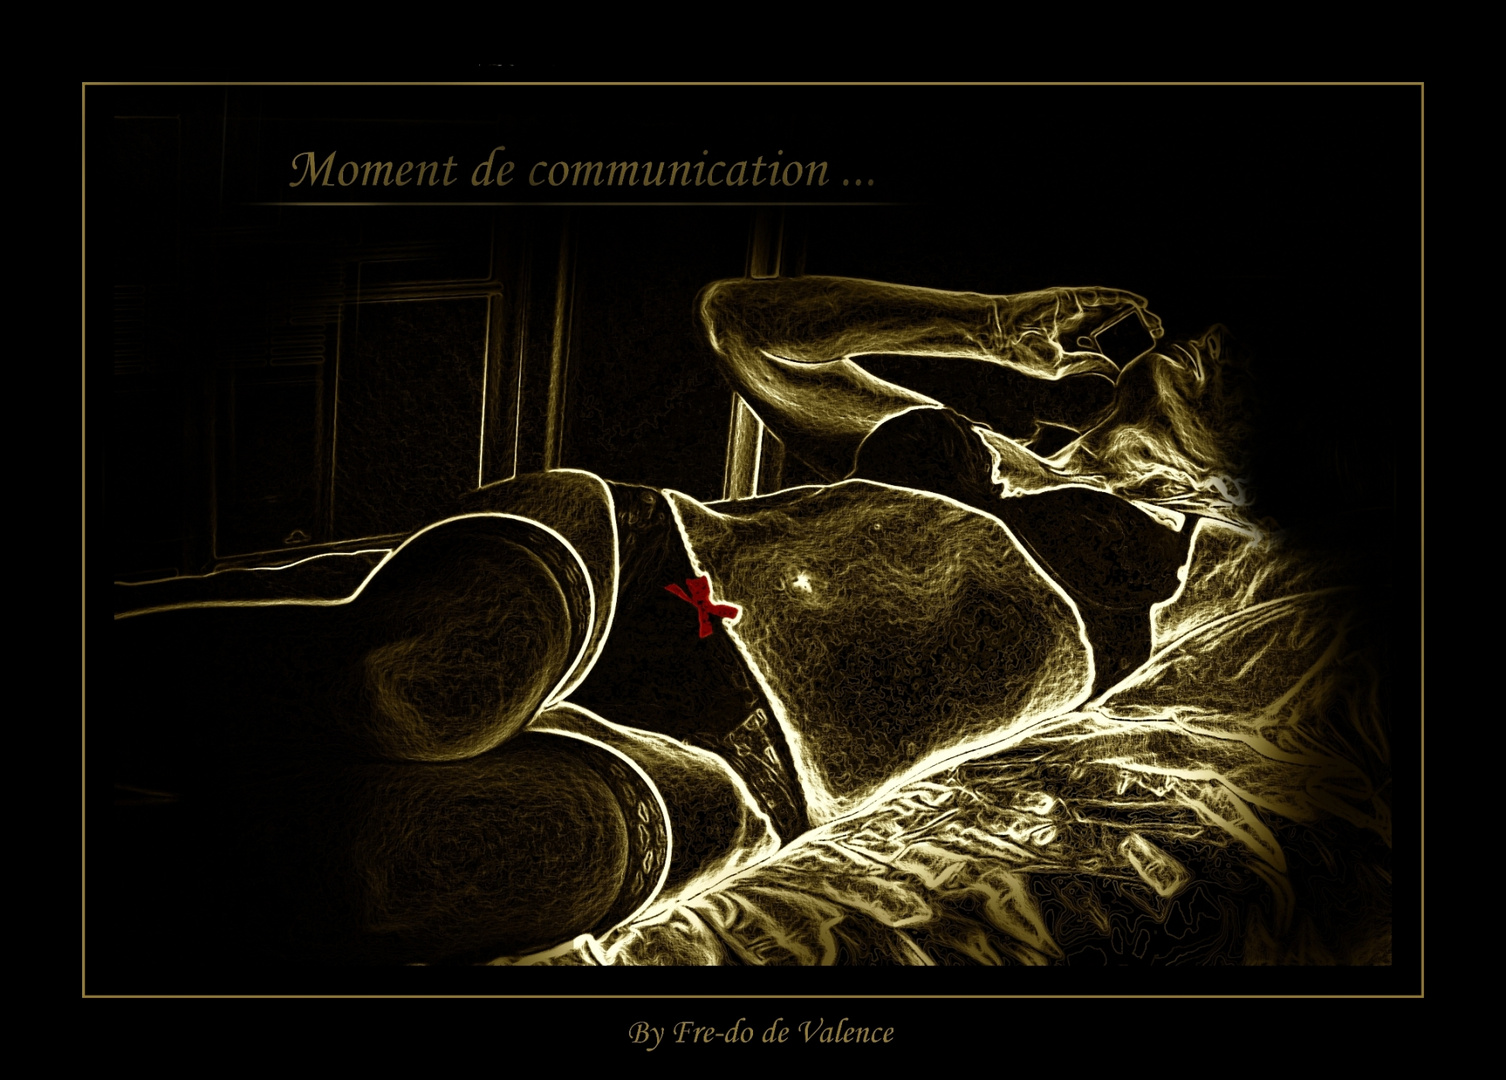 Moment de communication ...